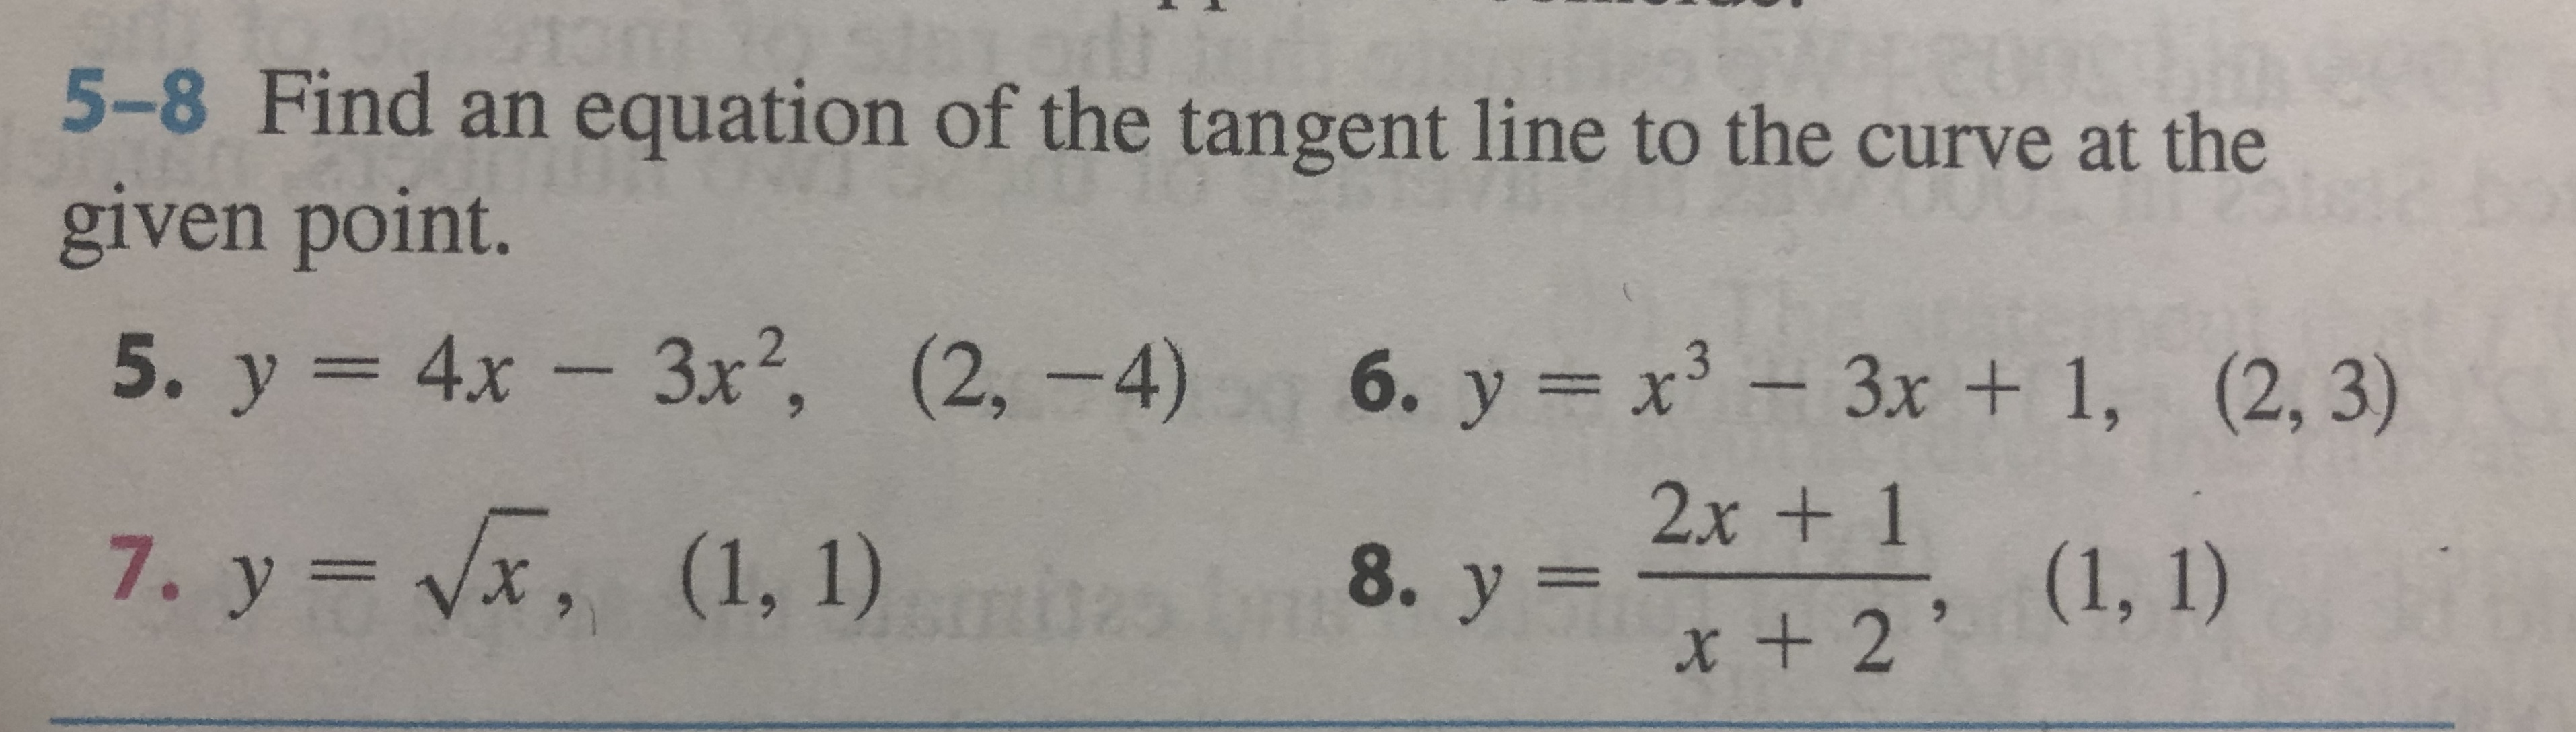 CU 5-8 Find an equation of the tangent line to the curve at the given point. 5. y 4x- 3x, (2, -4) - 3x2, 6. y x3-3x + 1, (2, 3) 2x + 1 7. y vx, (1, 1) (1, 1) 8. у 3 x + 2